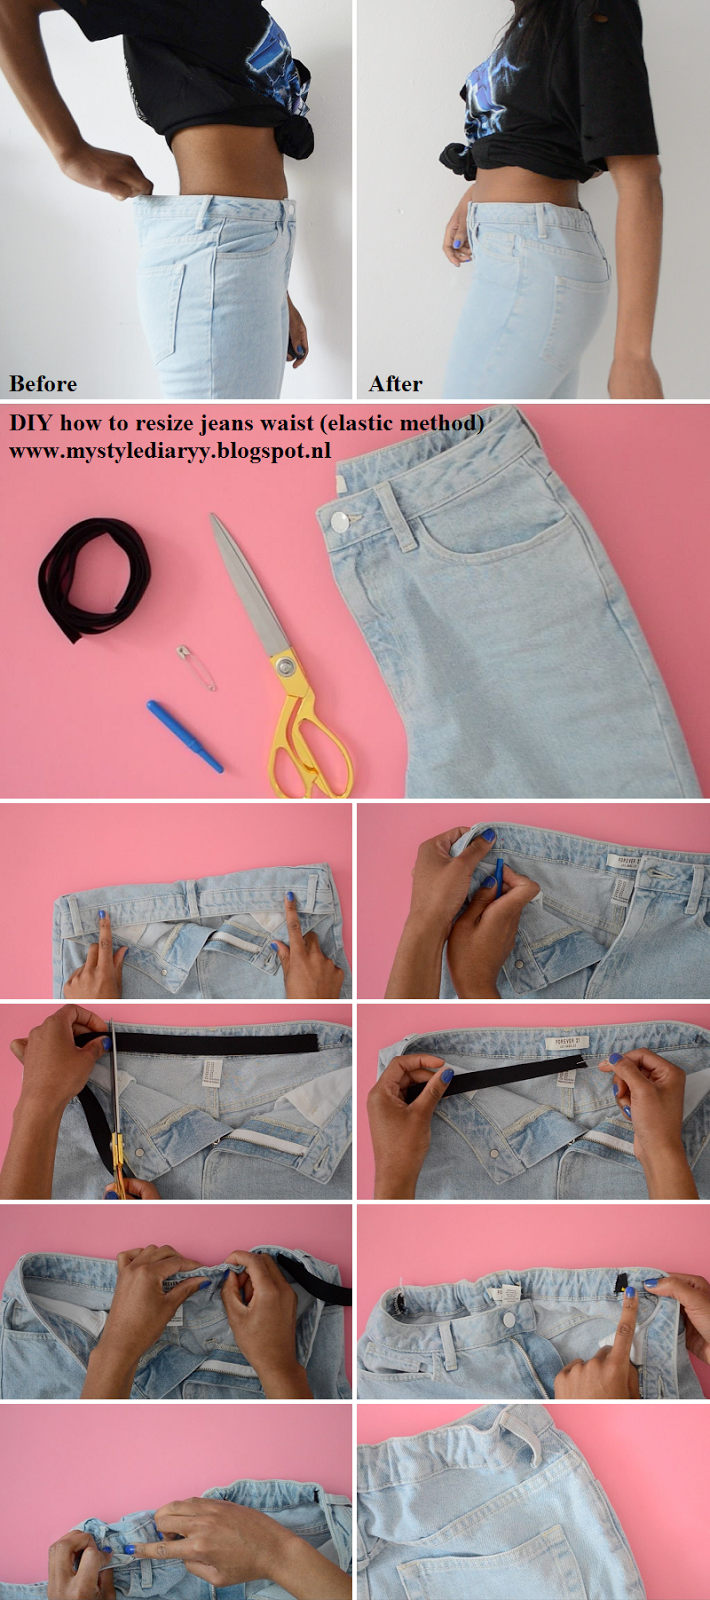 Jeans Take Fix Quick Resize In How Your To Waist kXPuiwTOZ